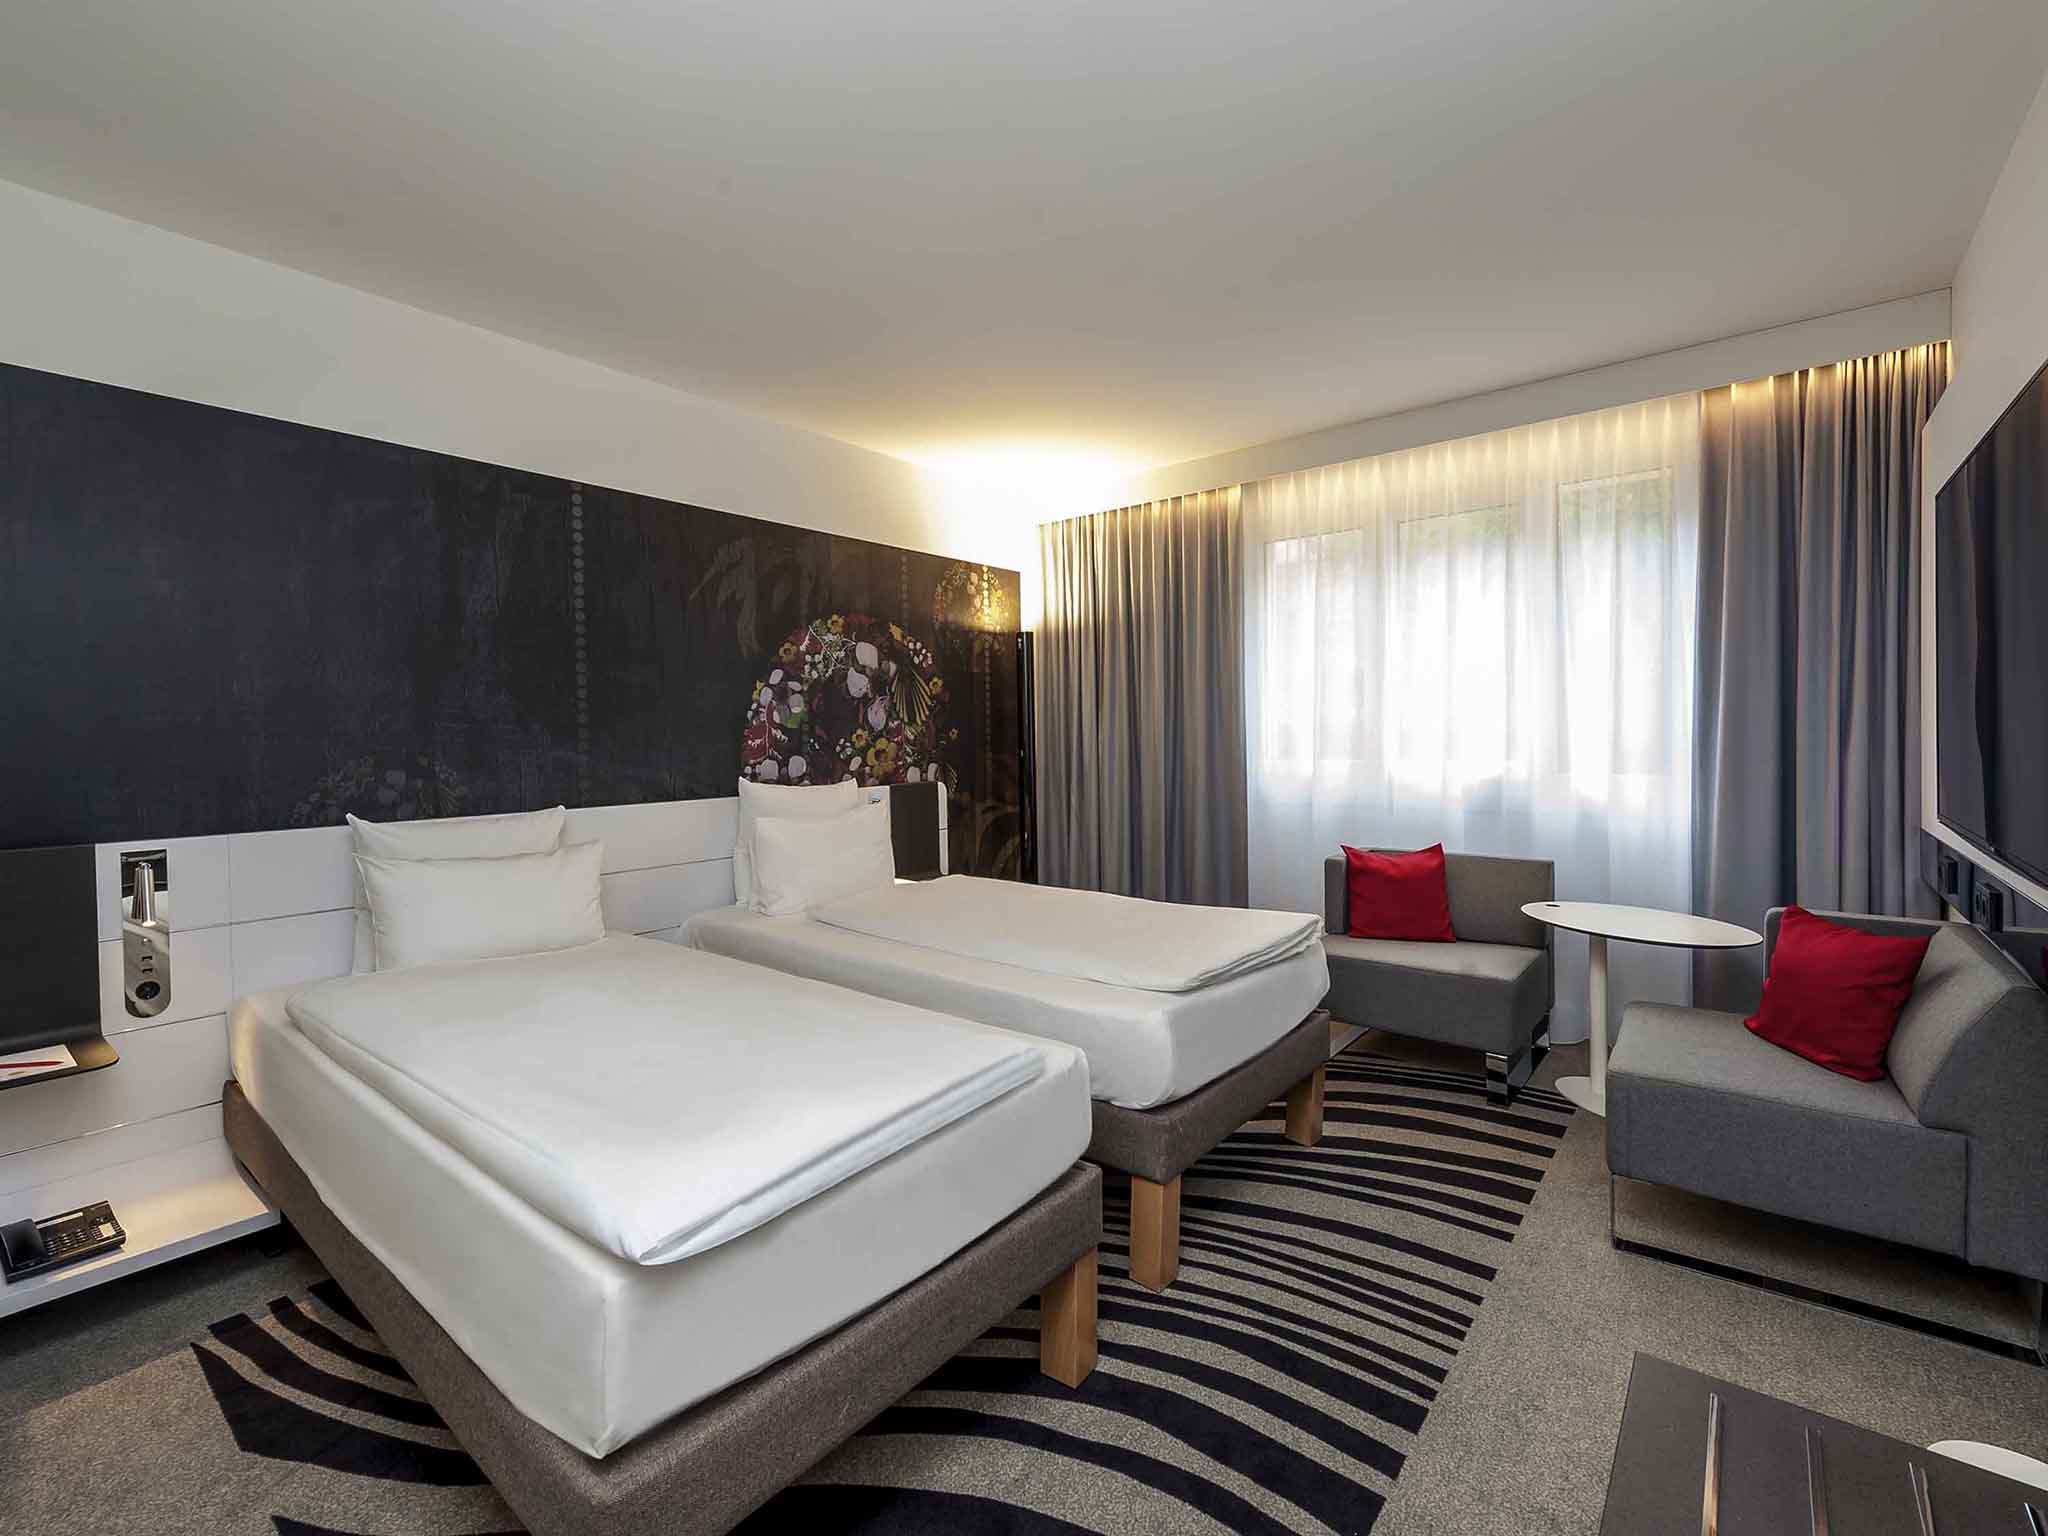 Hotel Novotel Munich City Book now Free Spa with Pool